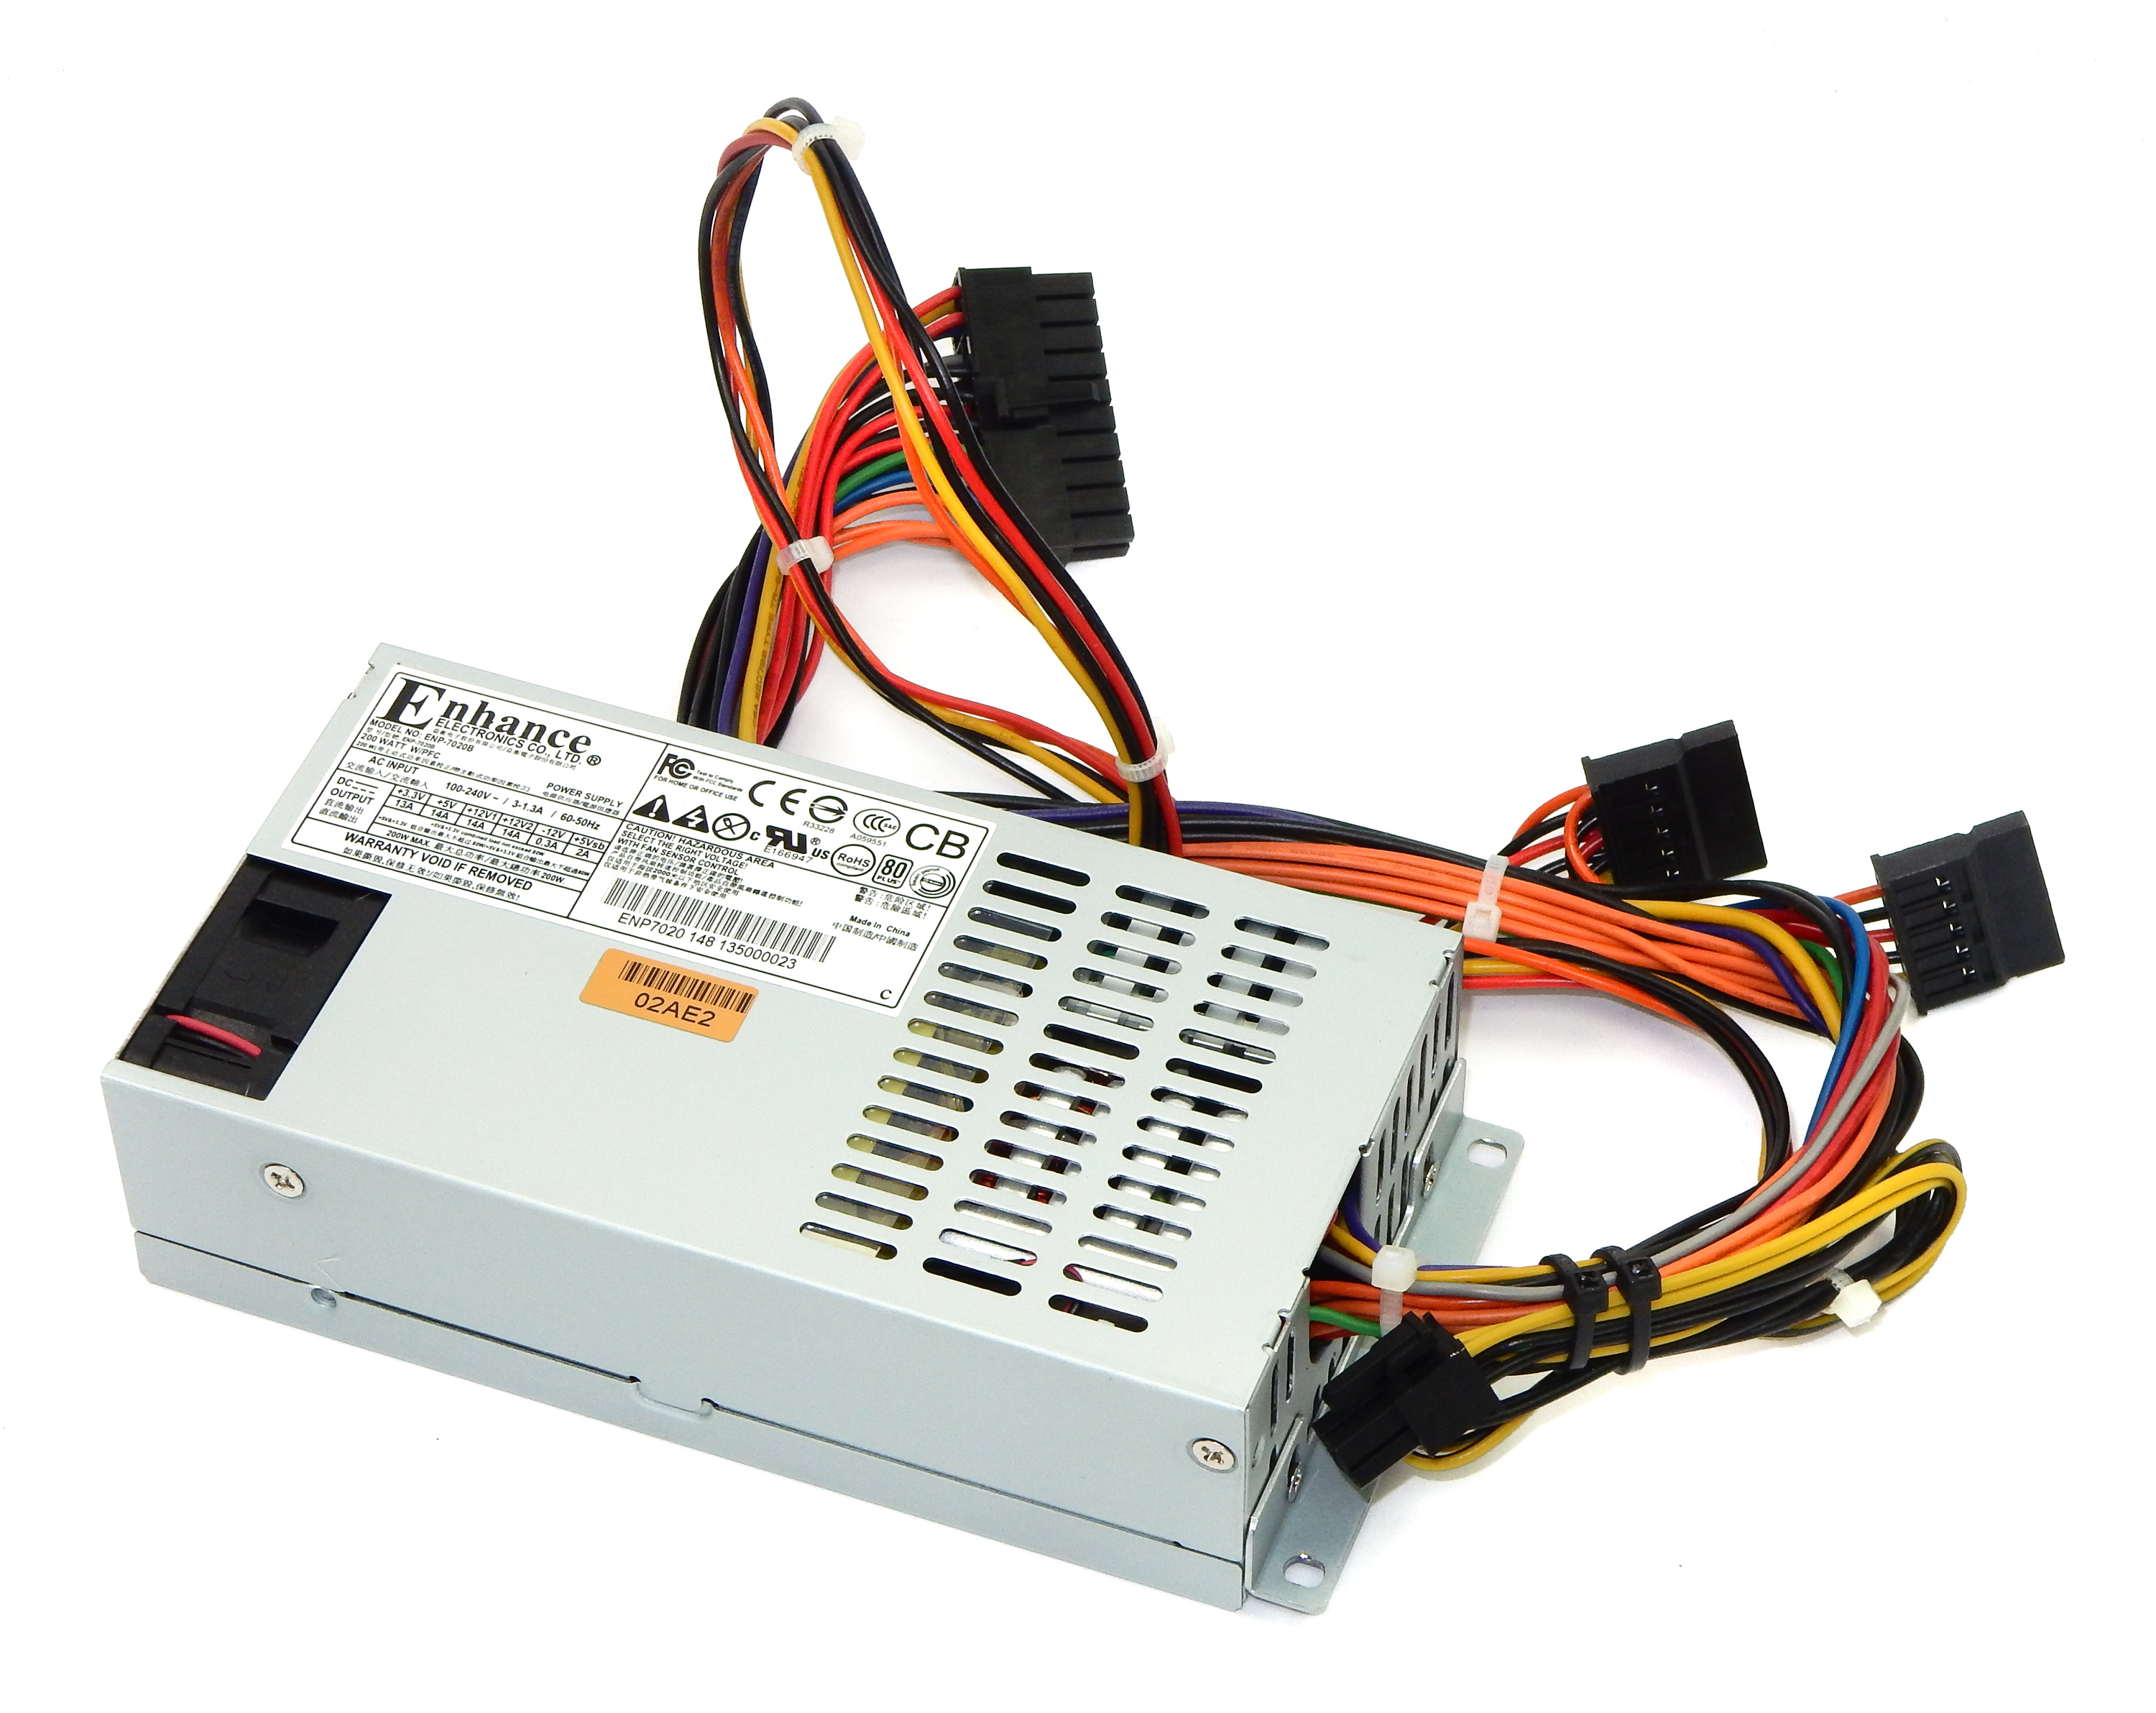 Enhance ENP-7020B 200W Power Supply PSU